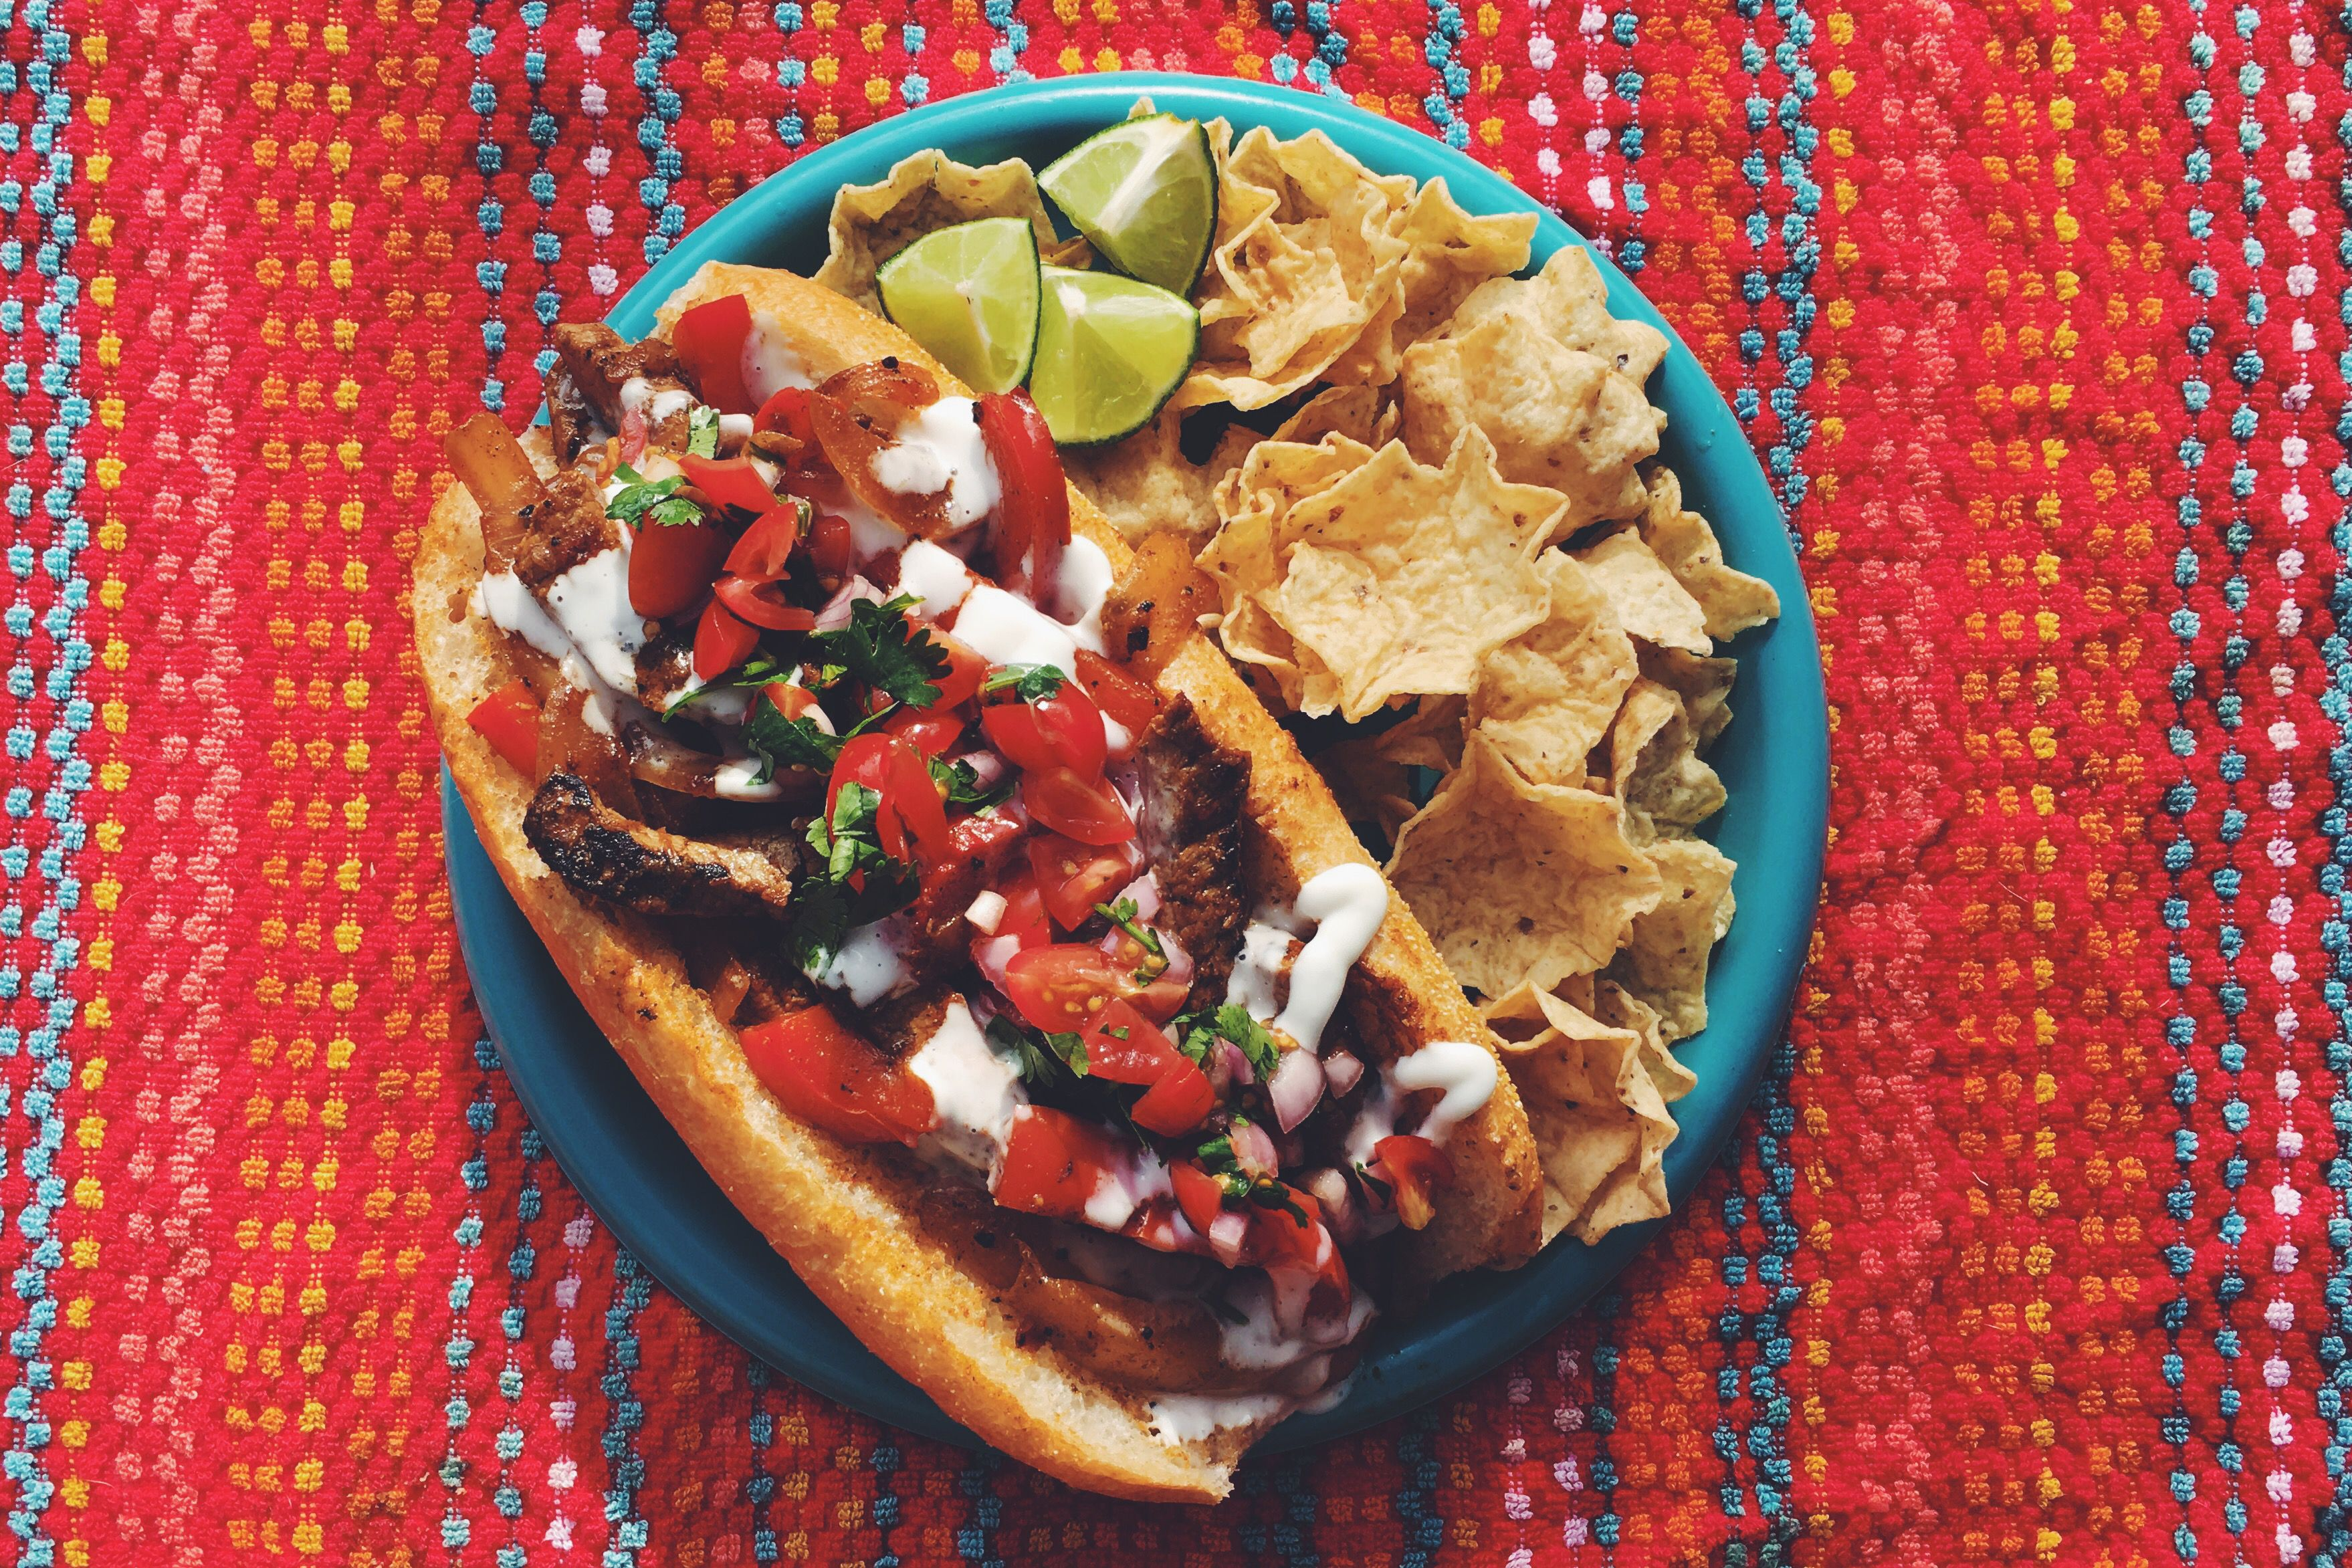 These Mexican-Inspired Sandwich Recipes Will Have You Yelling Olé